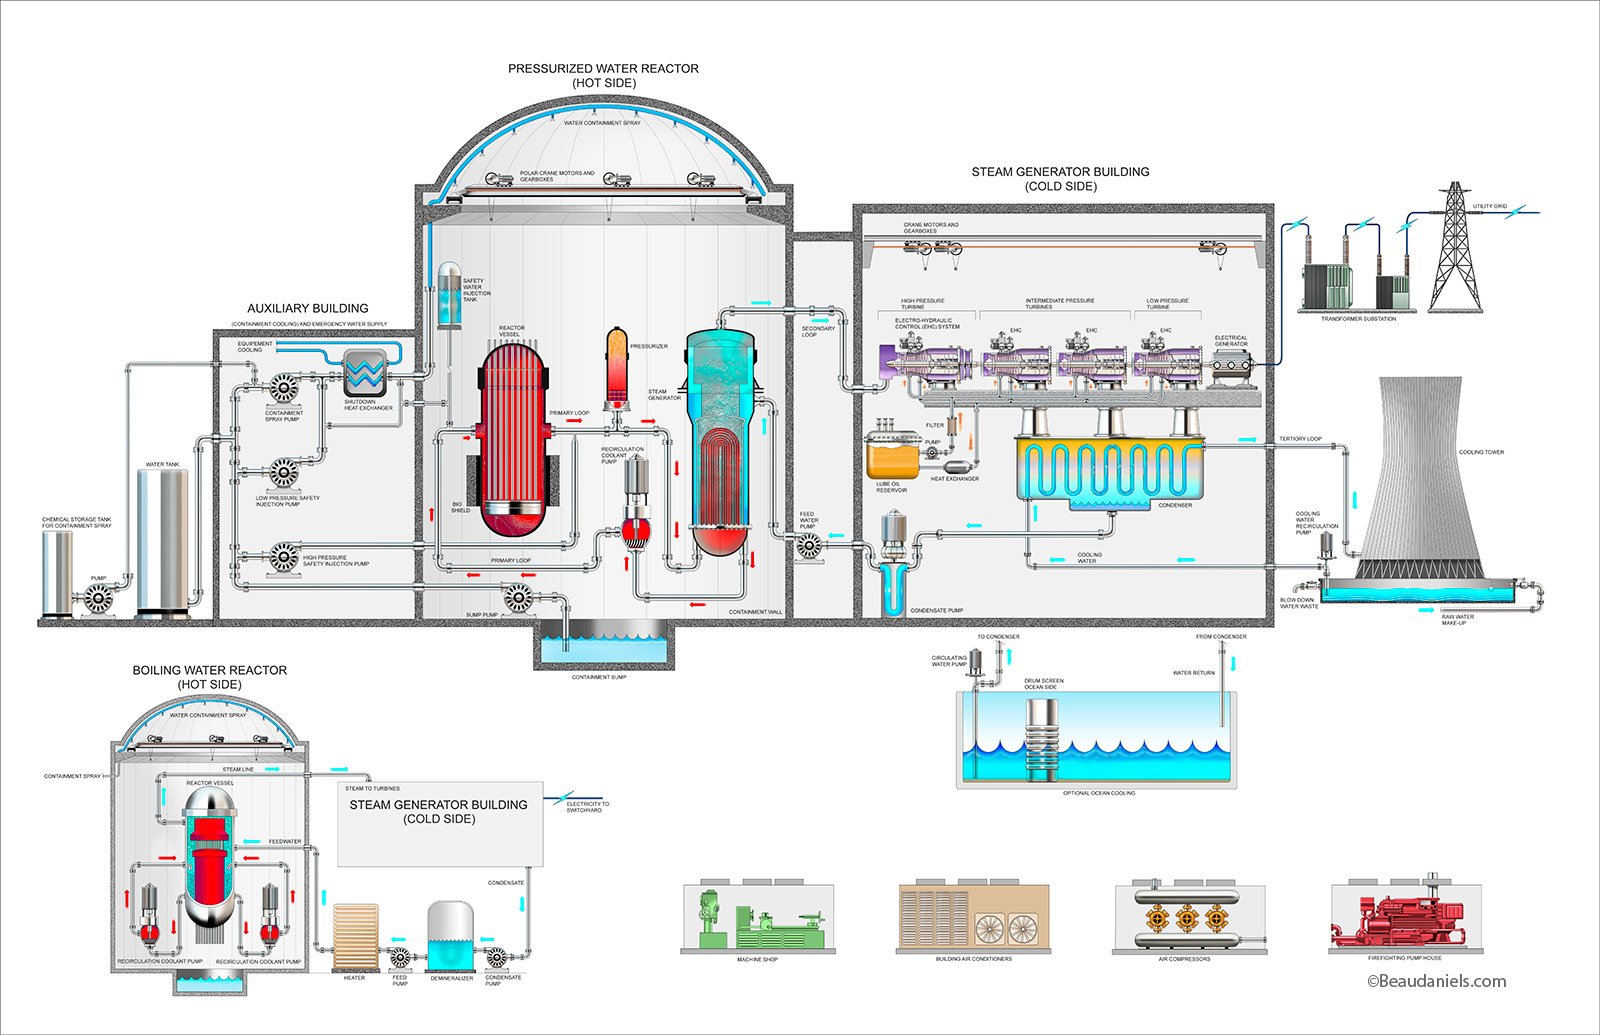 Technical Illustration Beau And Alan Daniels Energy Industry Power Plant Diagram Boiling Water Reactor Nuclear Cutaway Info Graphic